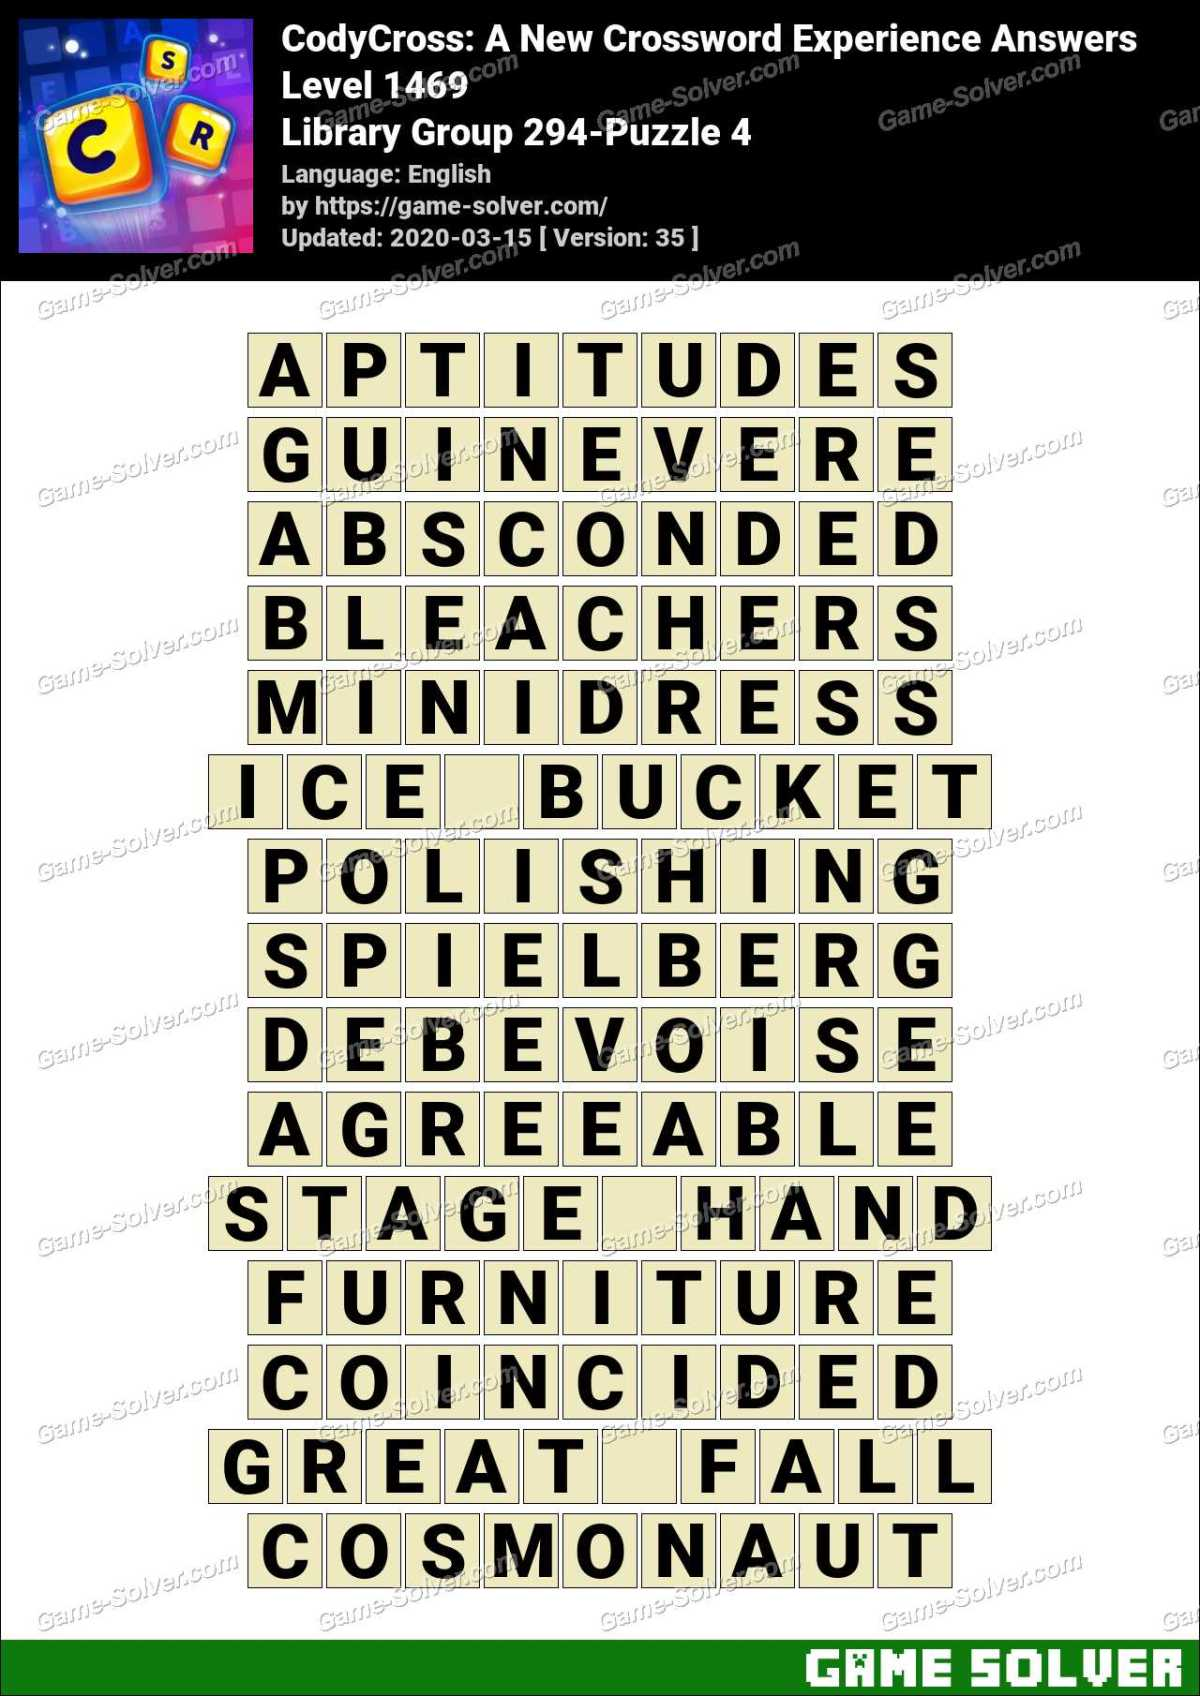 CodyCross Library Group 294-Puzzle 4 Answers